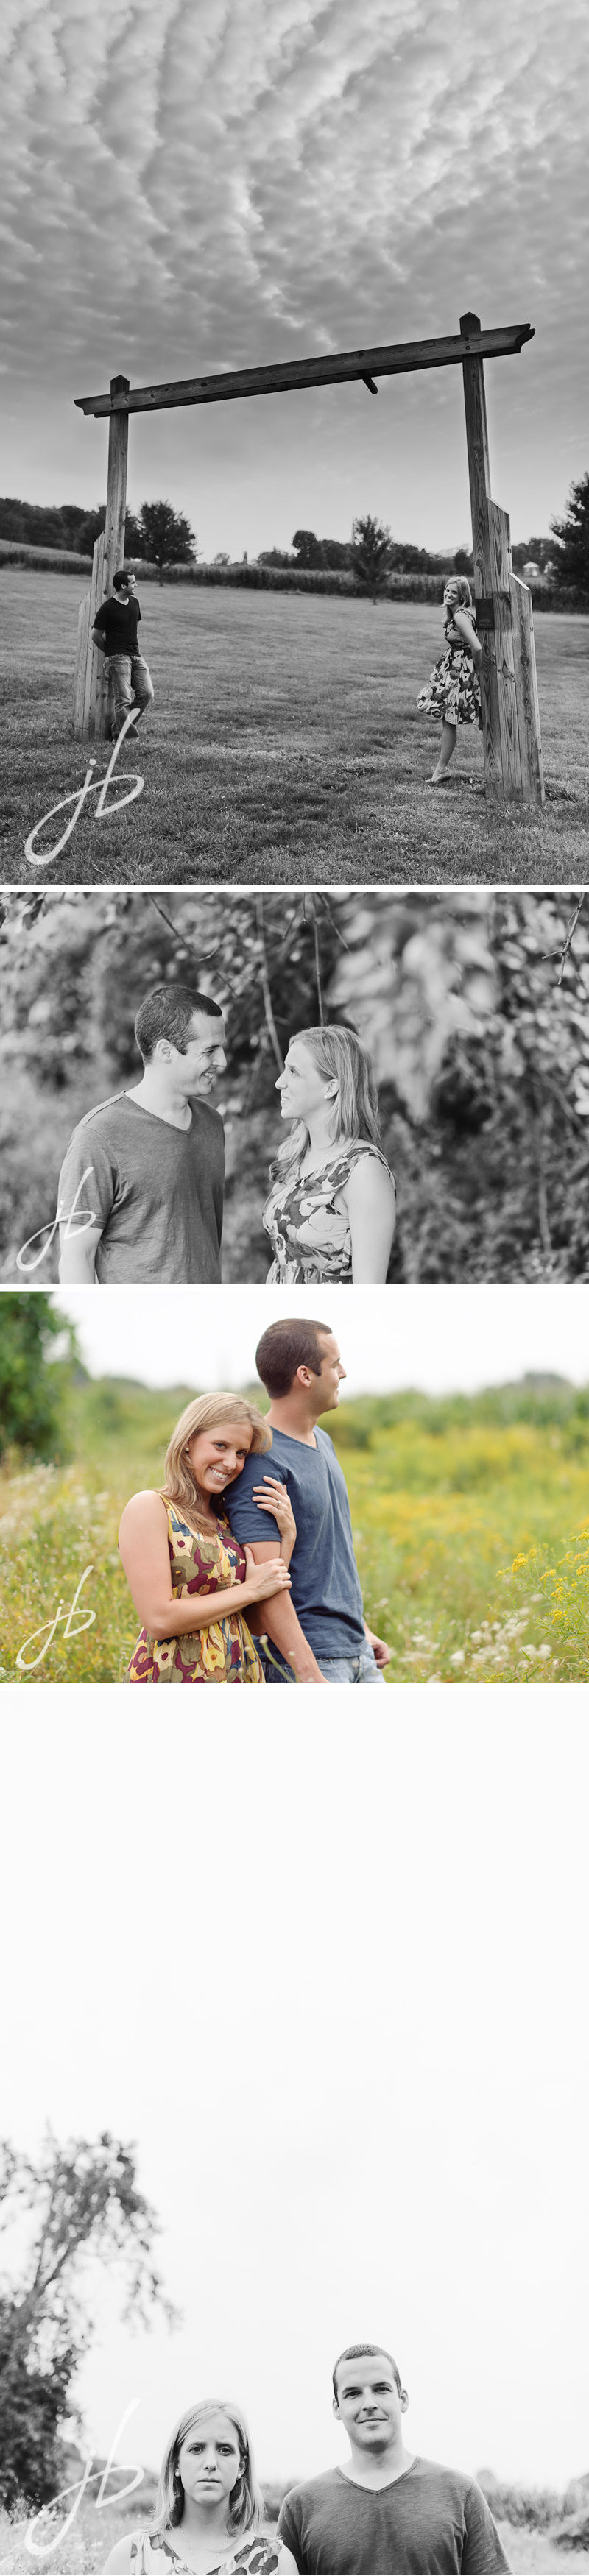 York PA wedding photography by Jeremy Bischoff Photography 002